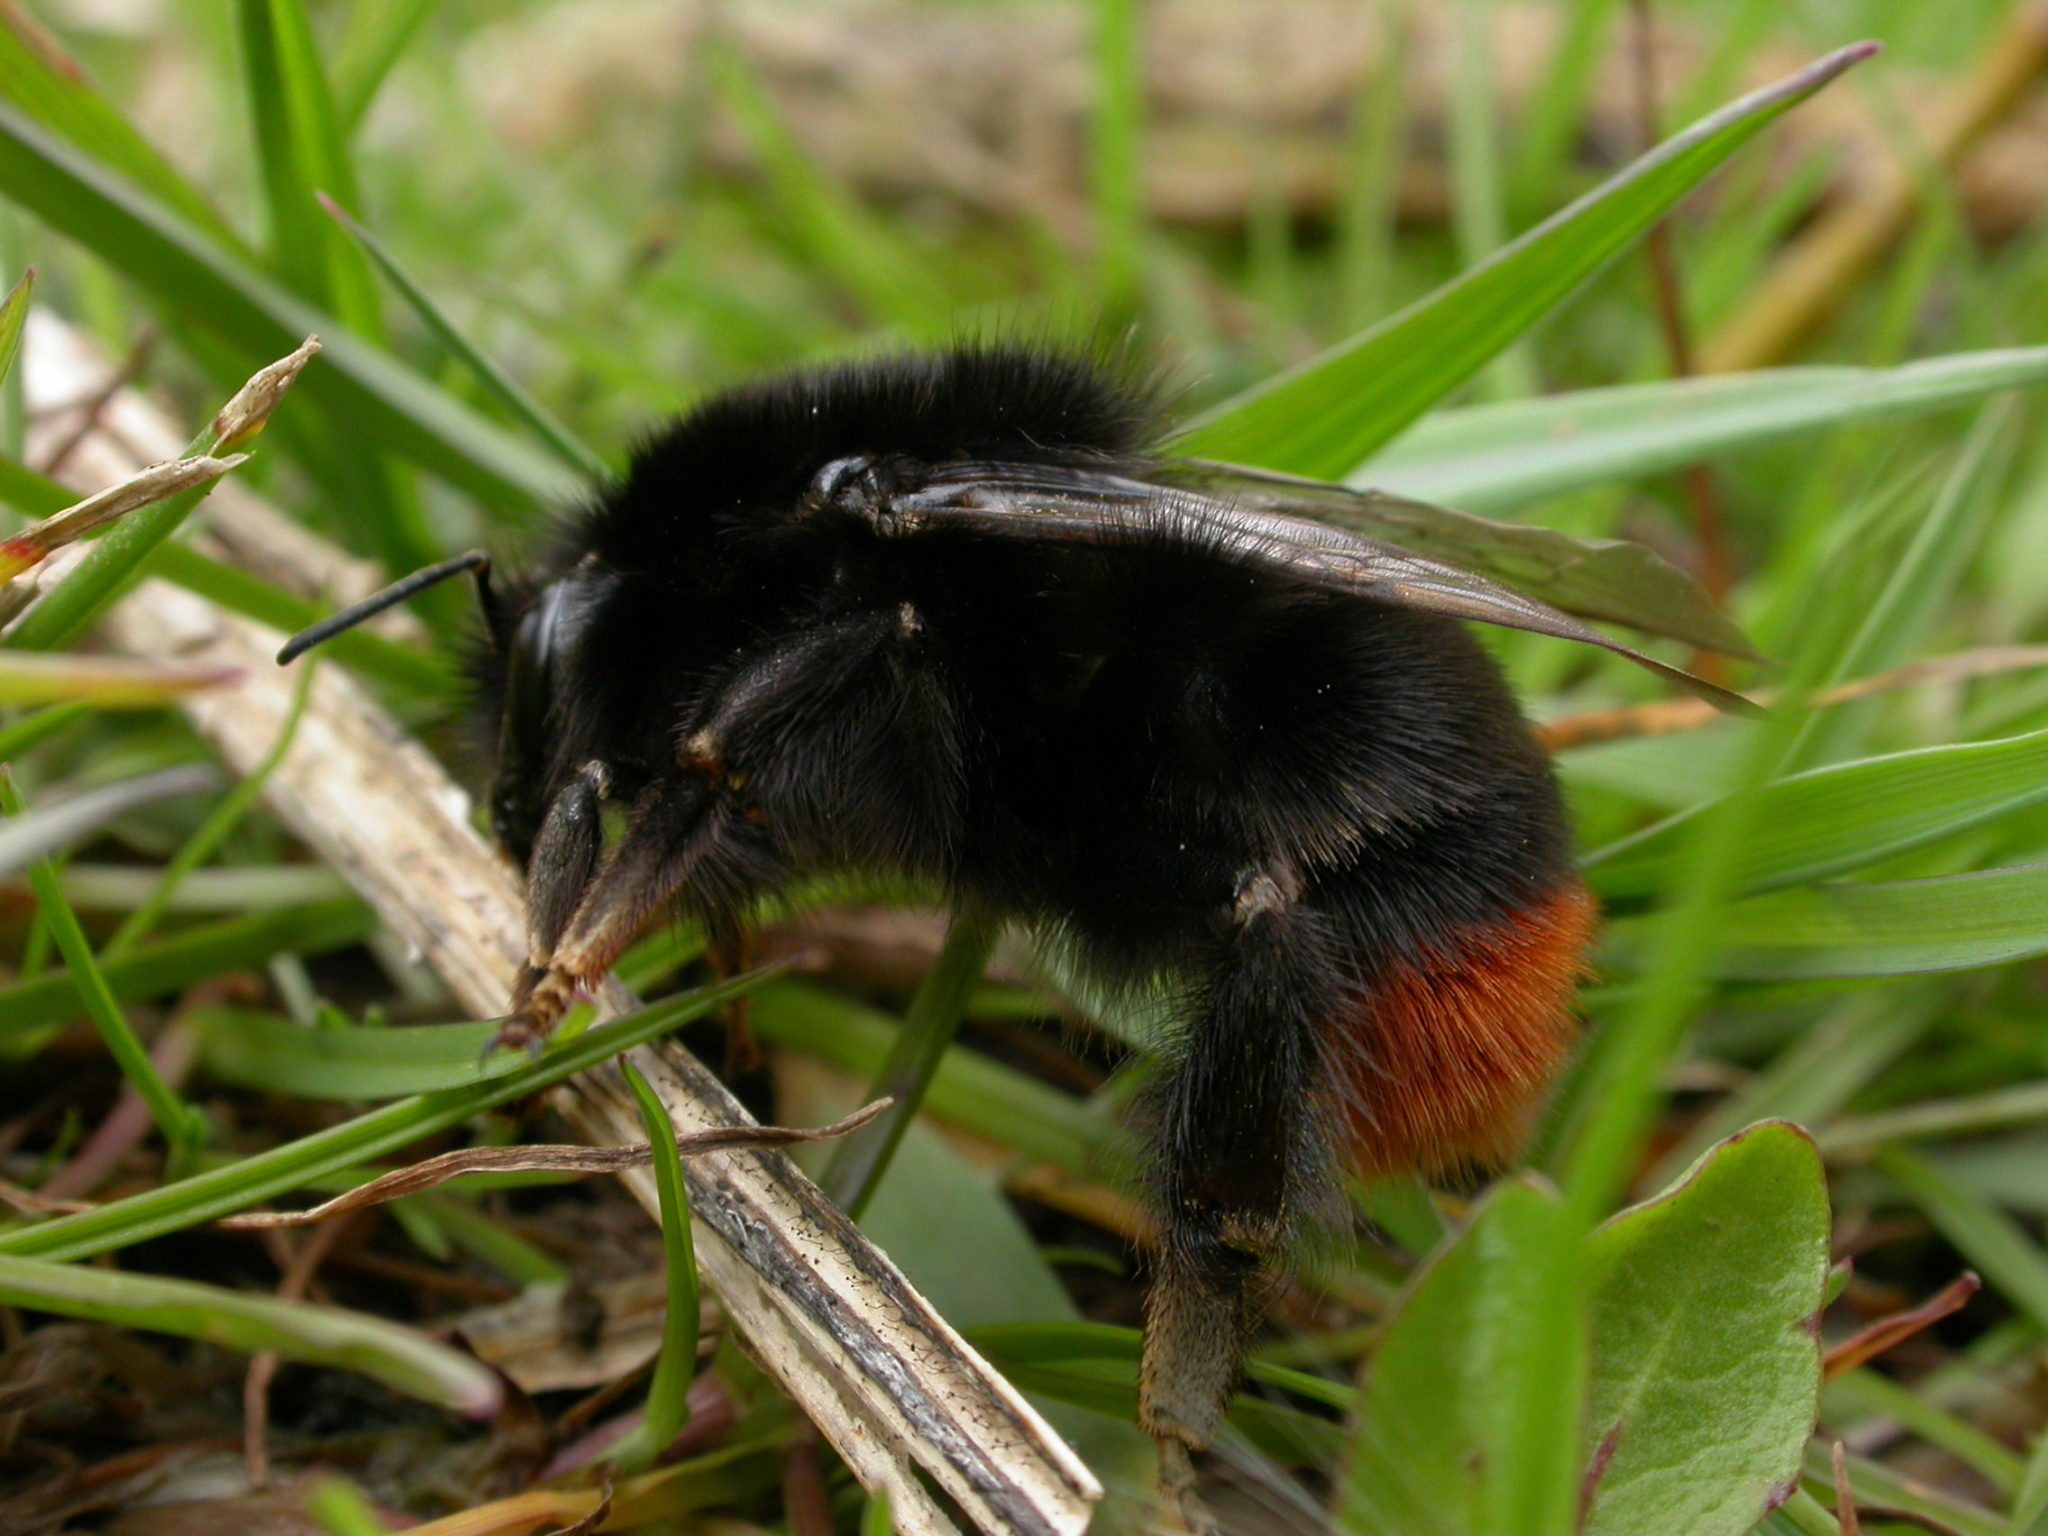 Identifying worn and faded bumblebees is never easy